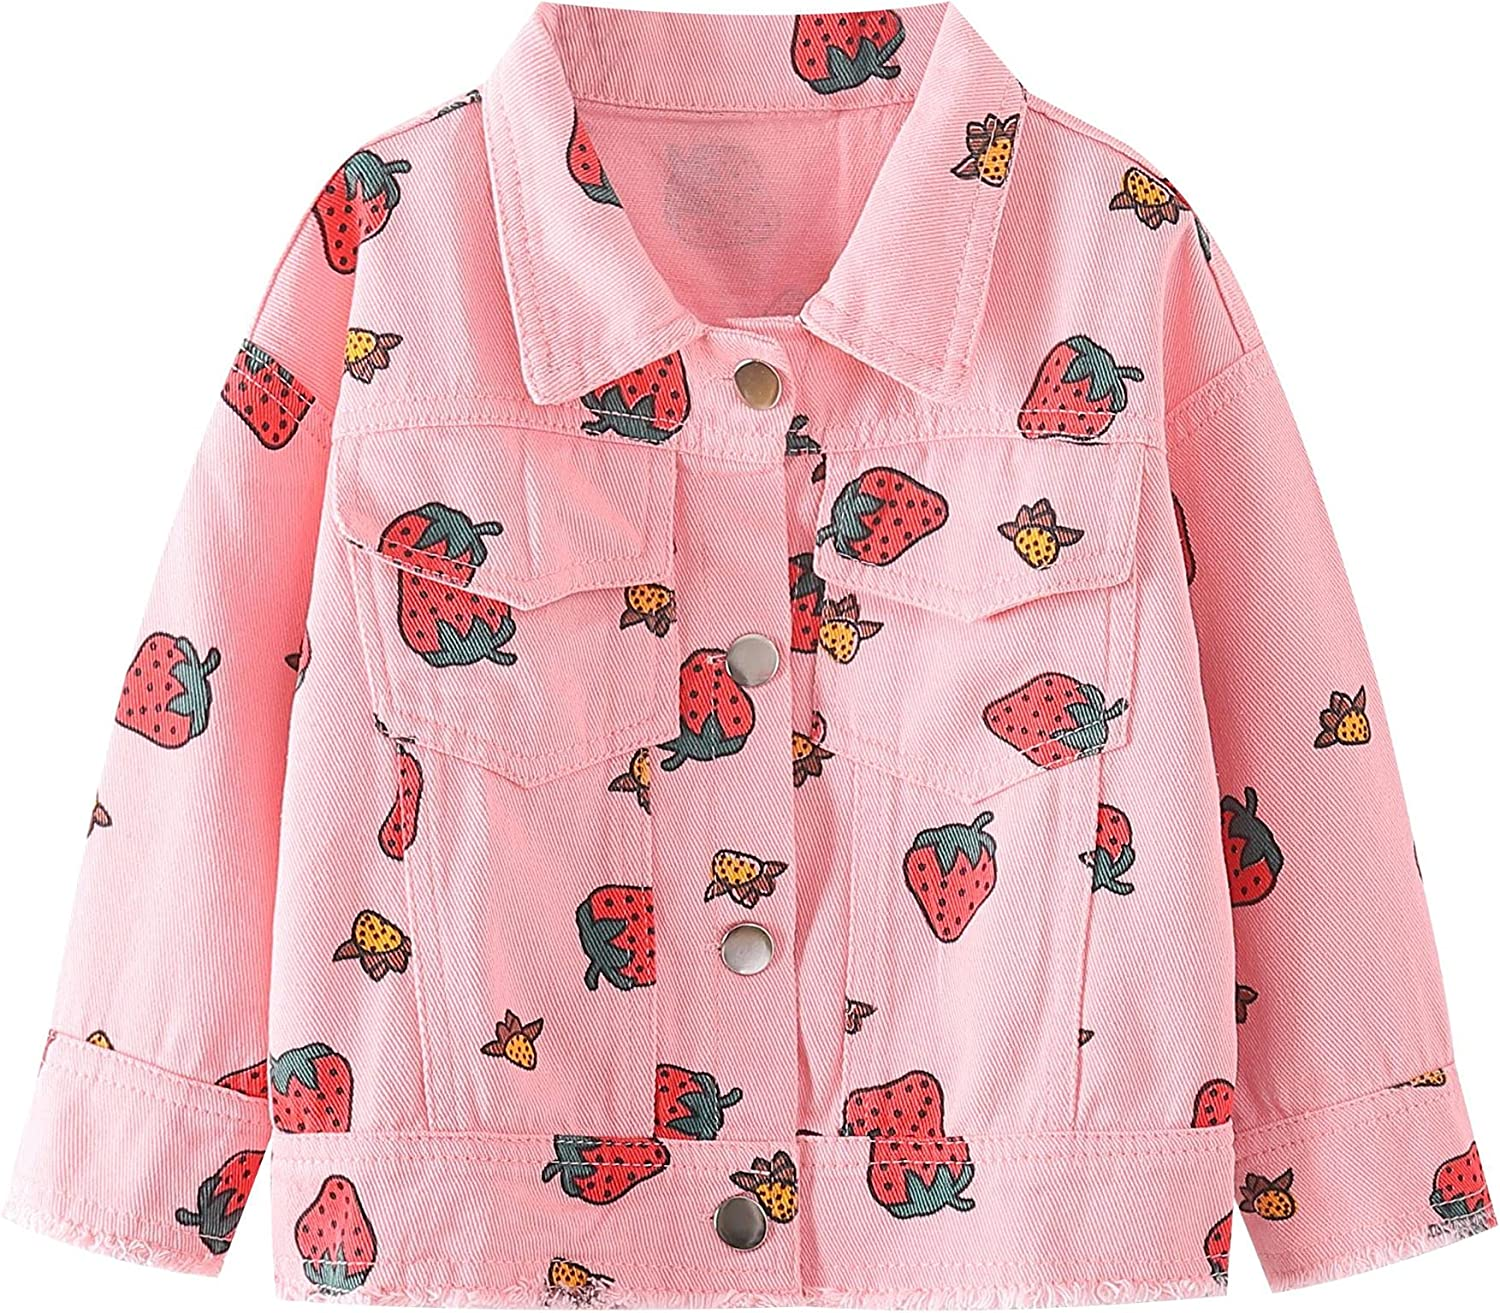 Strawberry Spring new work one after another Denim Jacket for Girls,Toddler Jea Spring Kids Super sale period limited